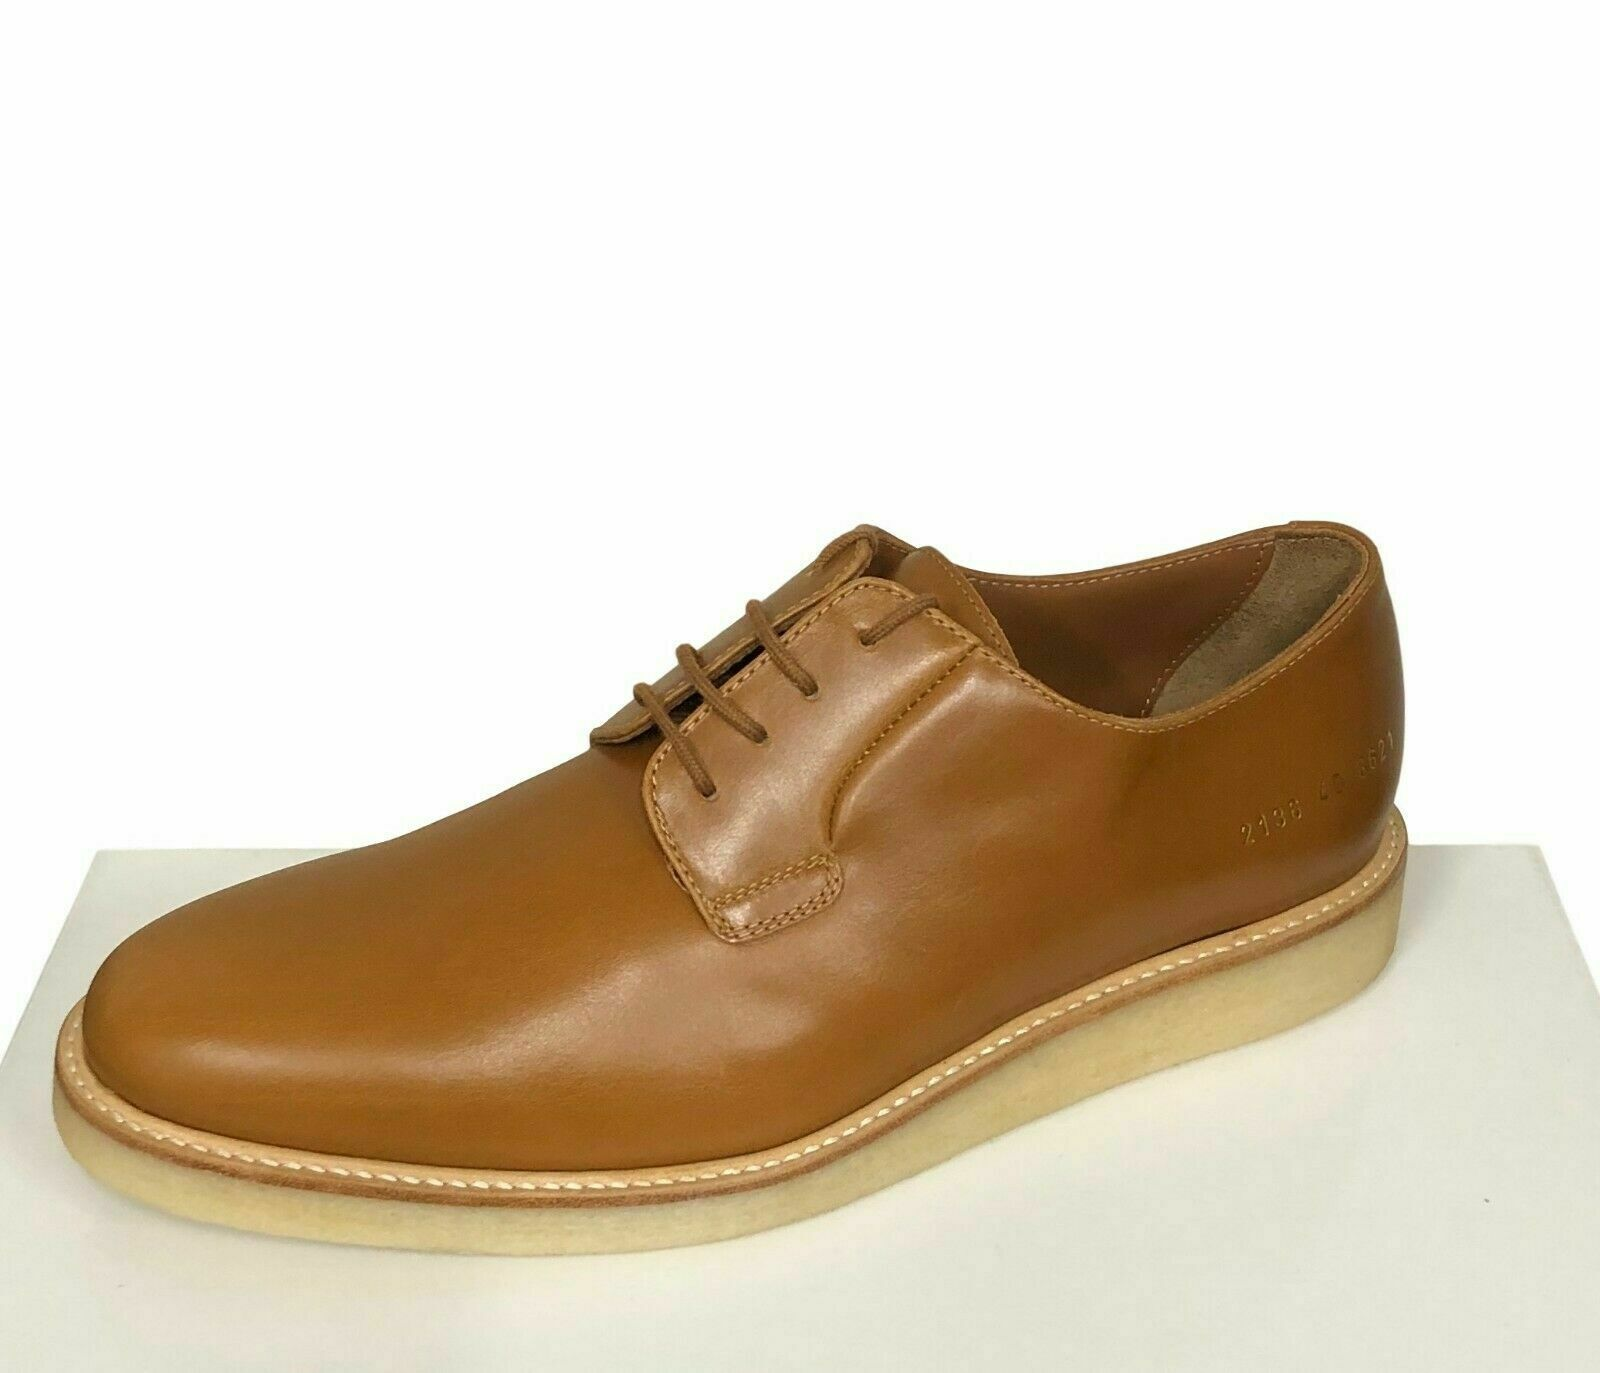 Common Projects Herren Schuhe Größe 7 40 Cognac braun Derby Glanz - Boden Models